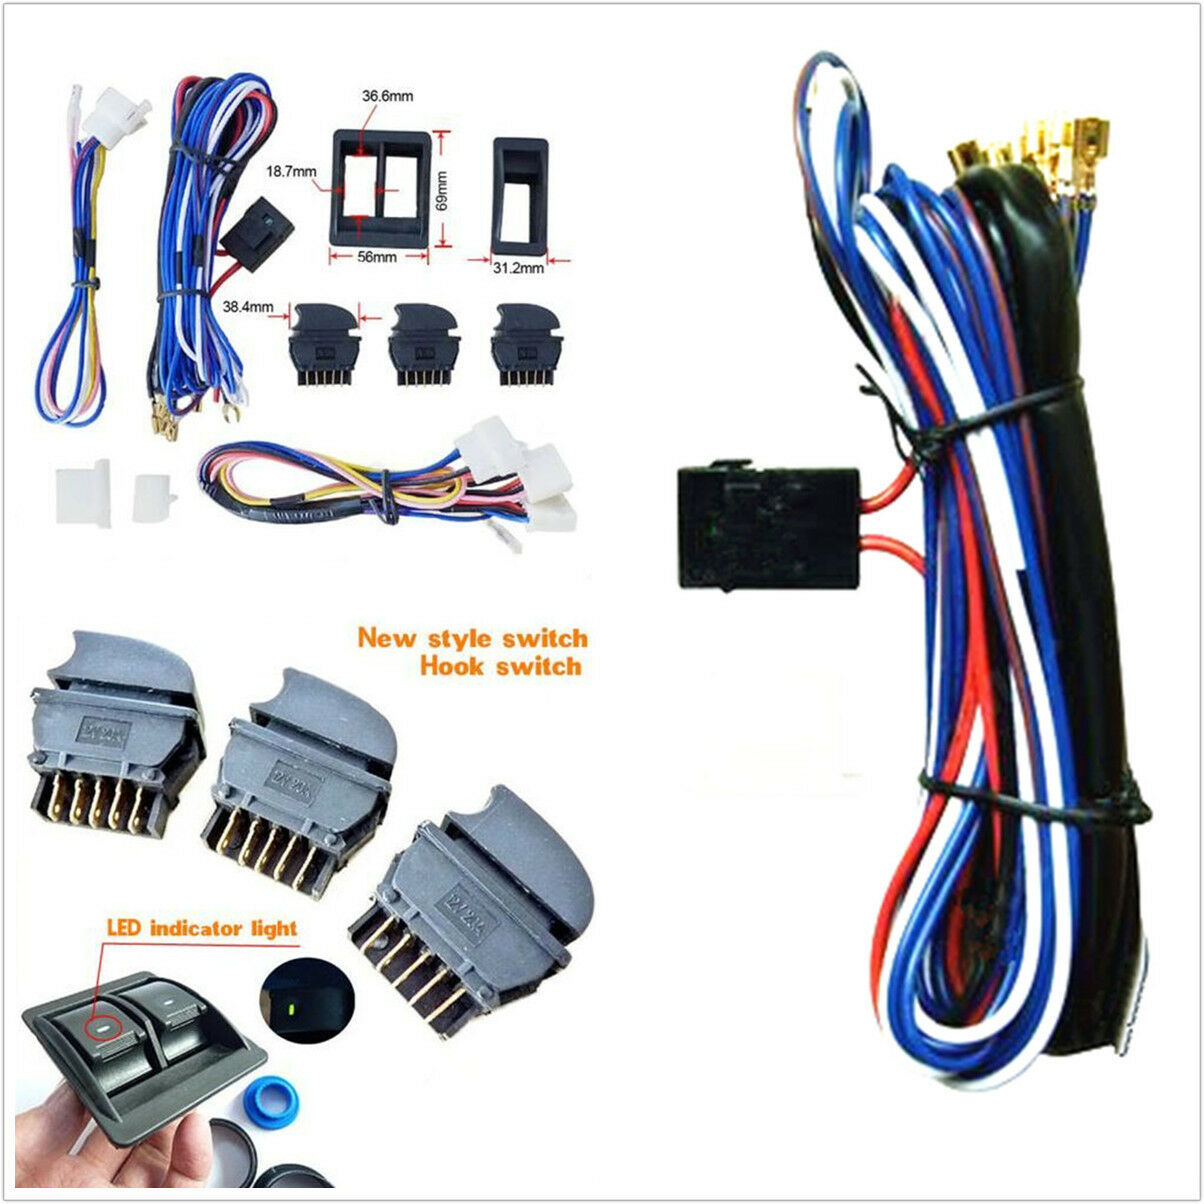 s l1600 diy dc 12v car power electric window switch with wire harness Shoulder Harness at honlapkeszites.co